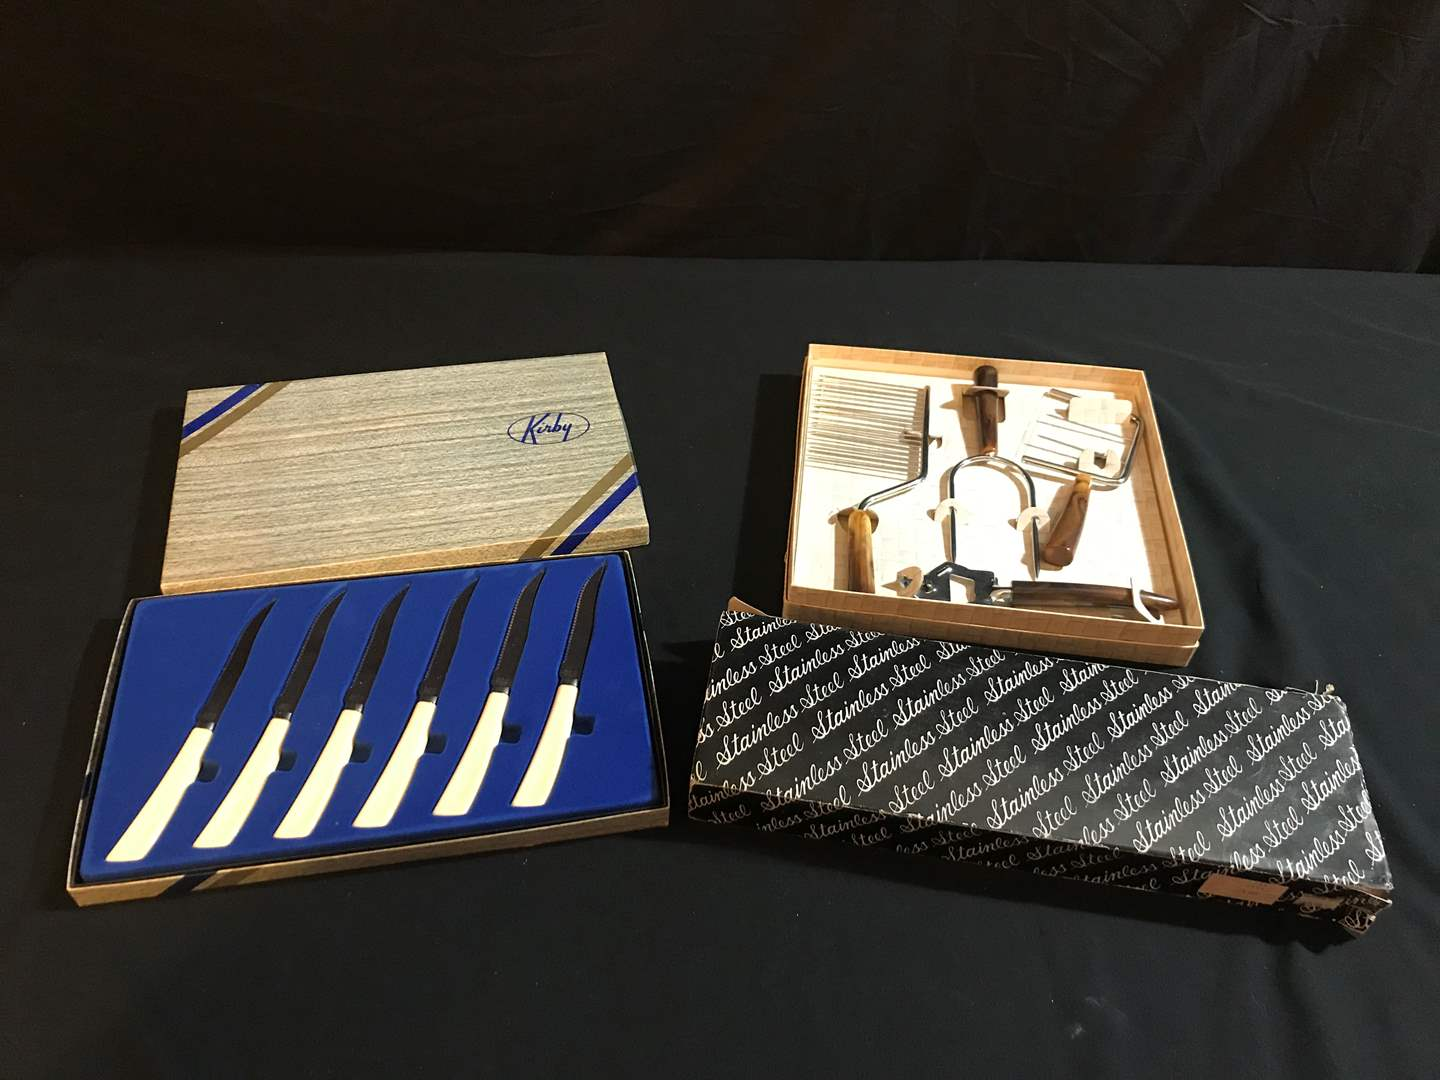 Lot # 96 - Hostess Set, Kirby Knives, Stainless Steel Carving Set (main image)